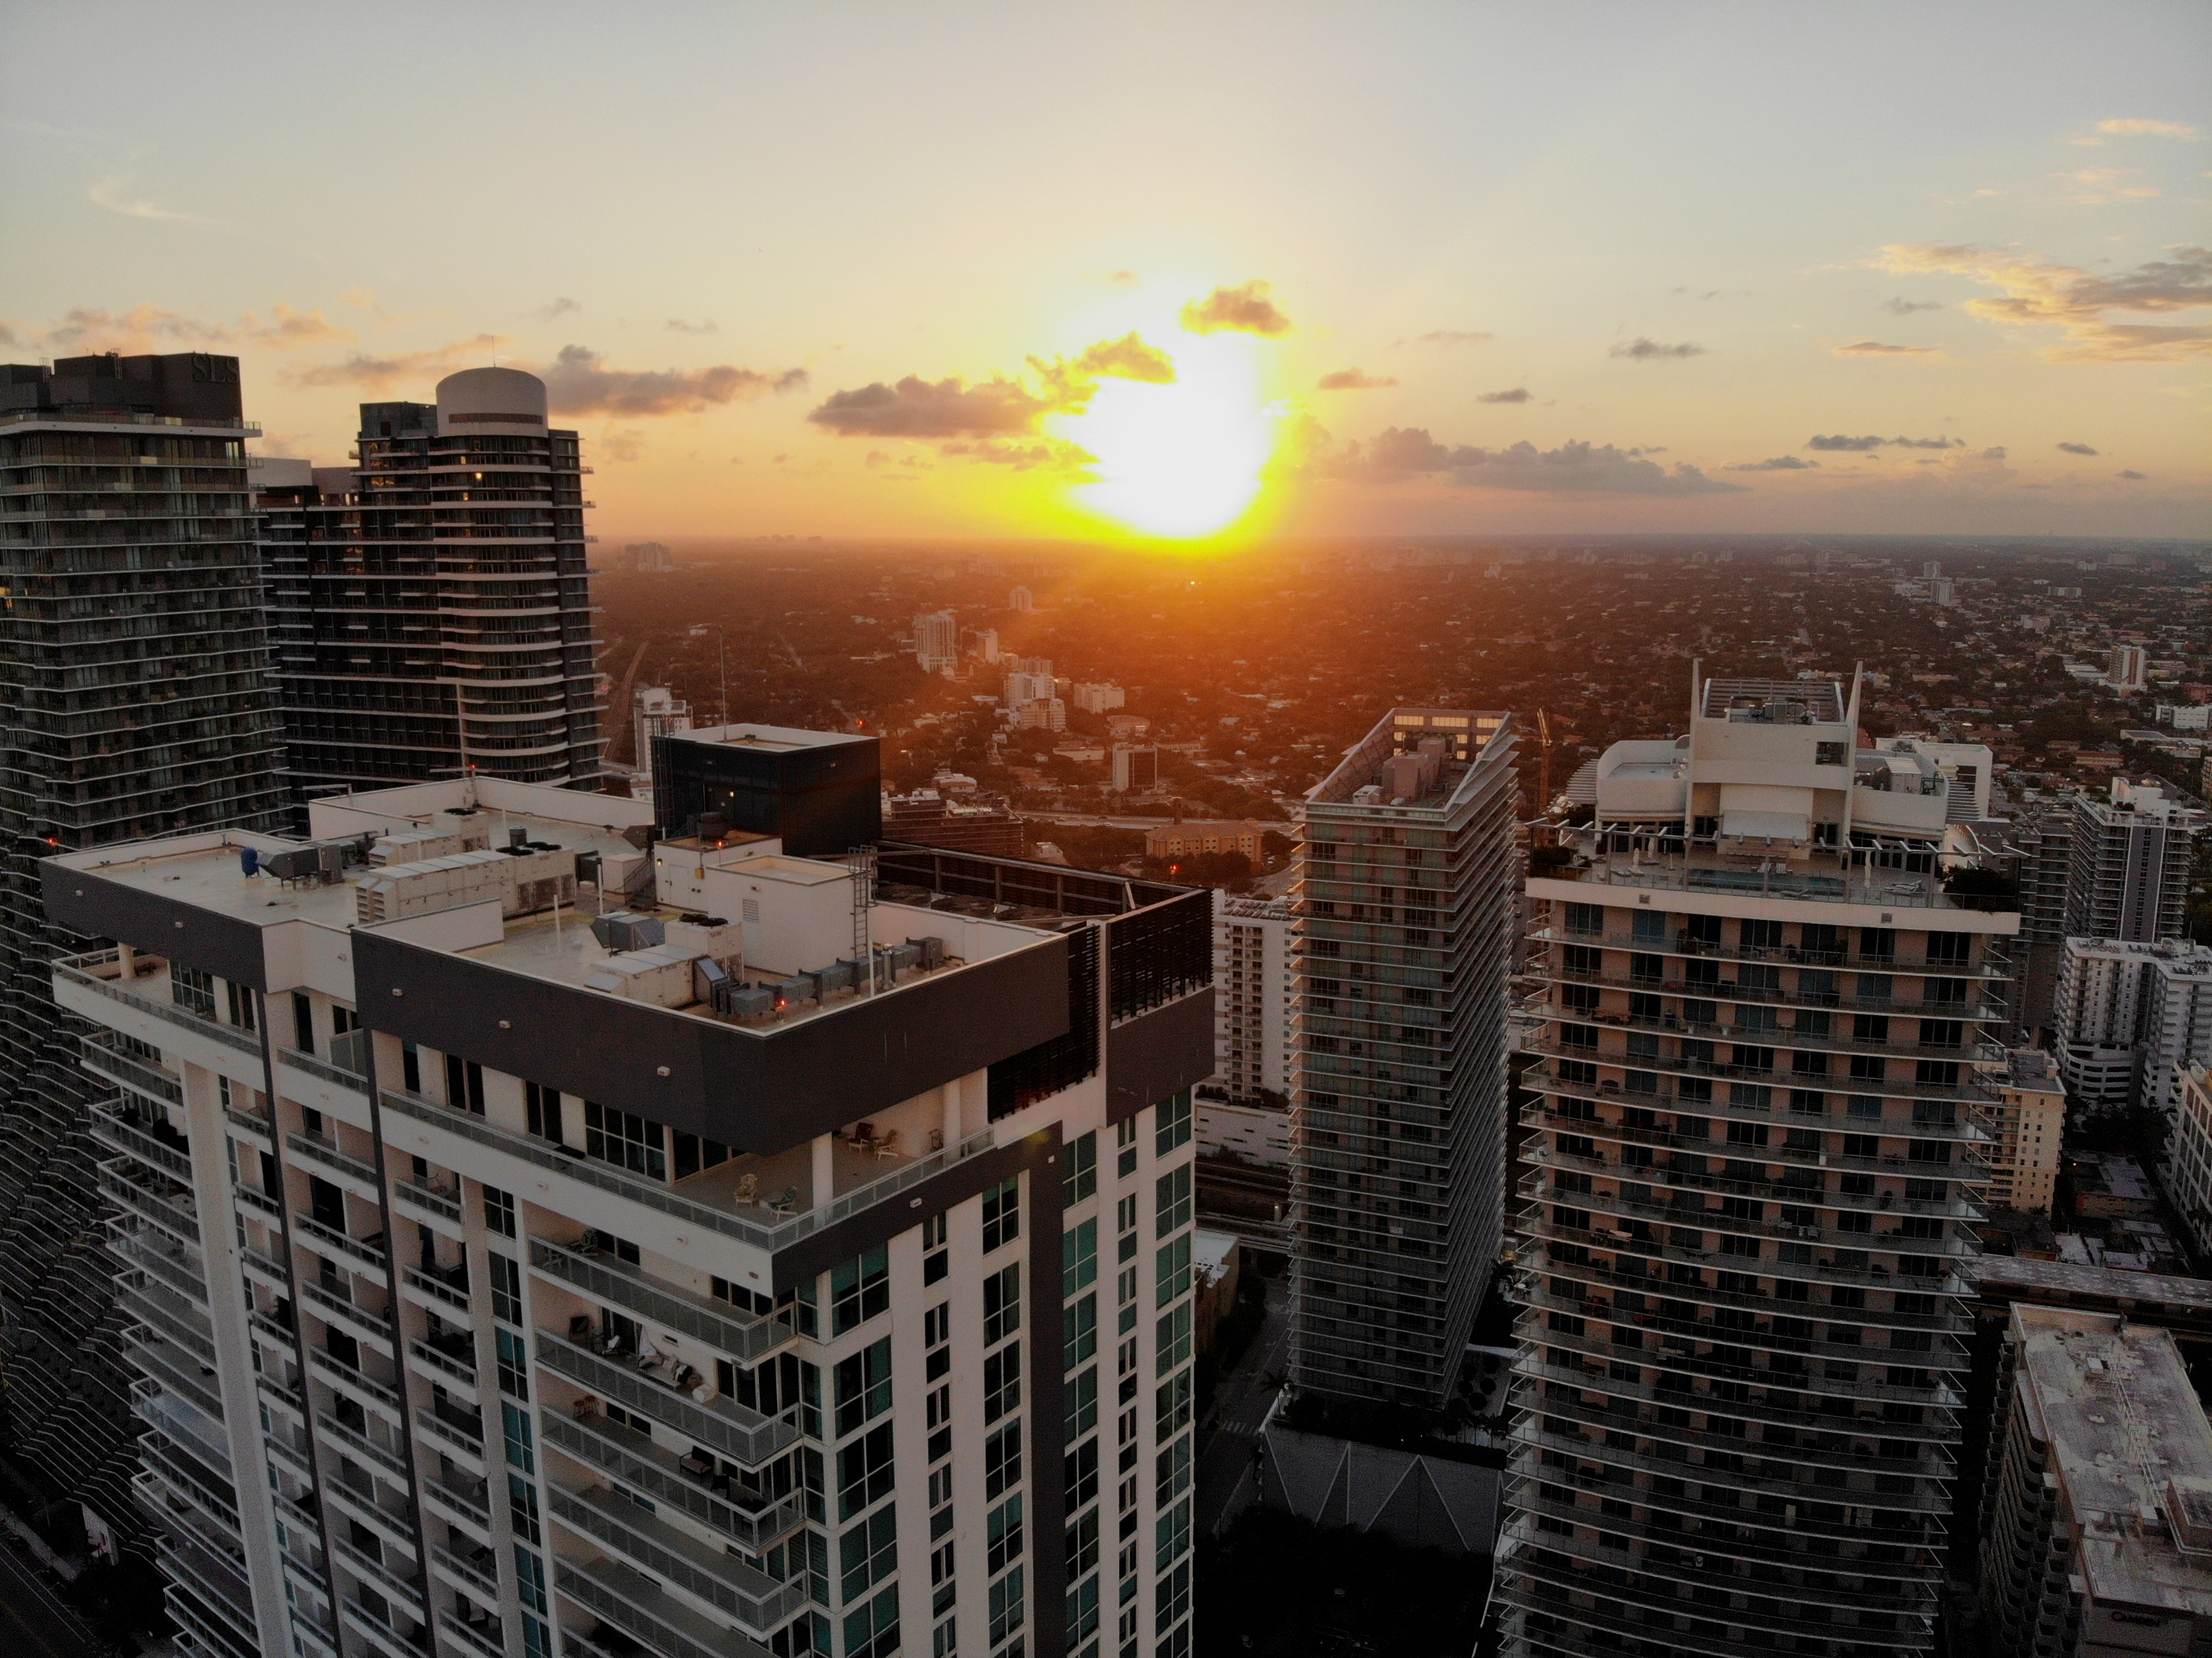 Brickell, Miami, Florida